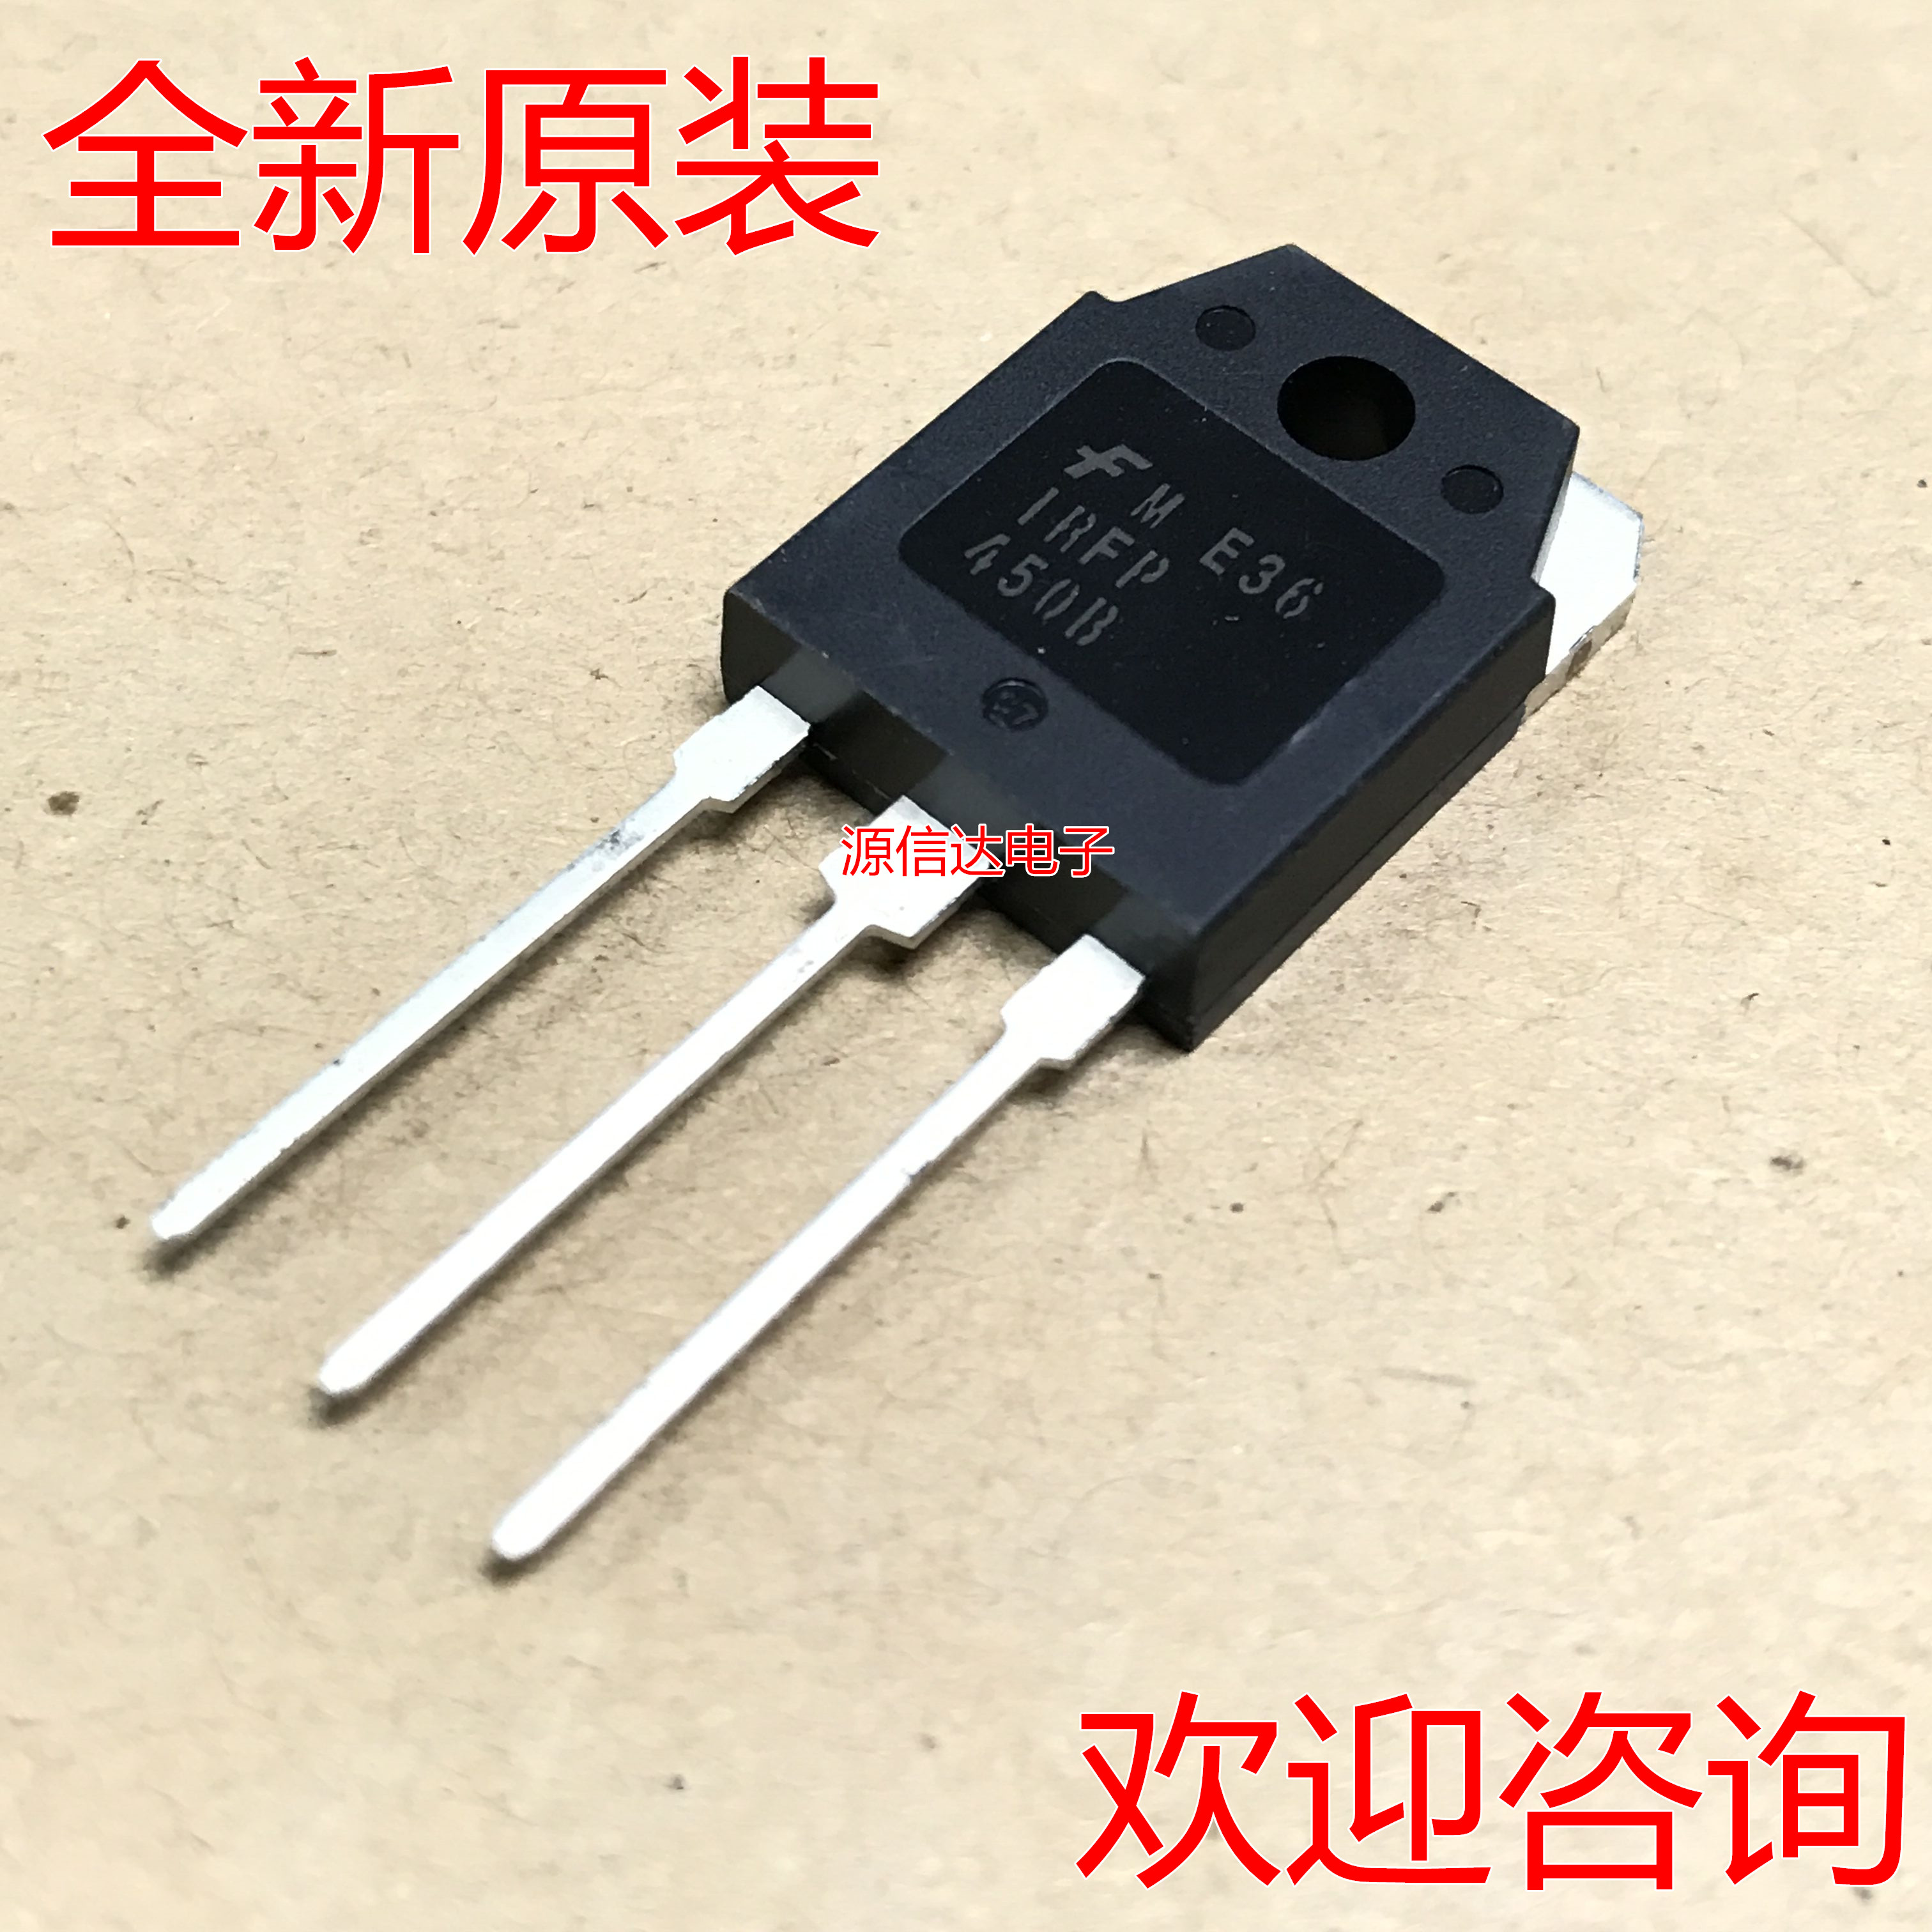 New Imported Irfp450 Irfp450b 14a 500v To-247 Field Effect Tube Original Stock Neither Too Hard Nor Too Soft